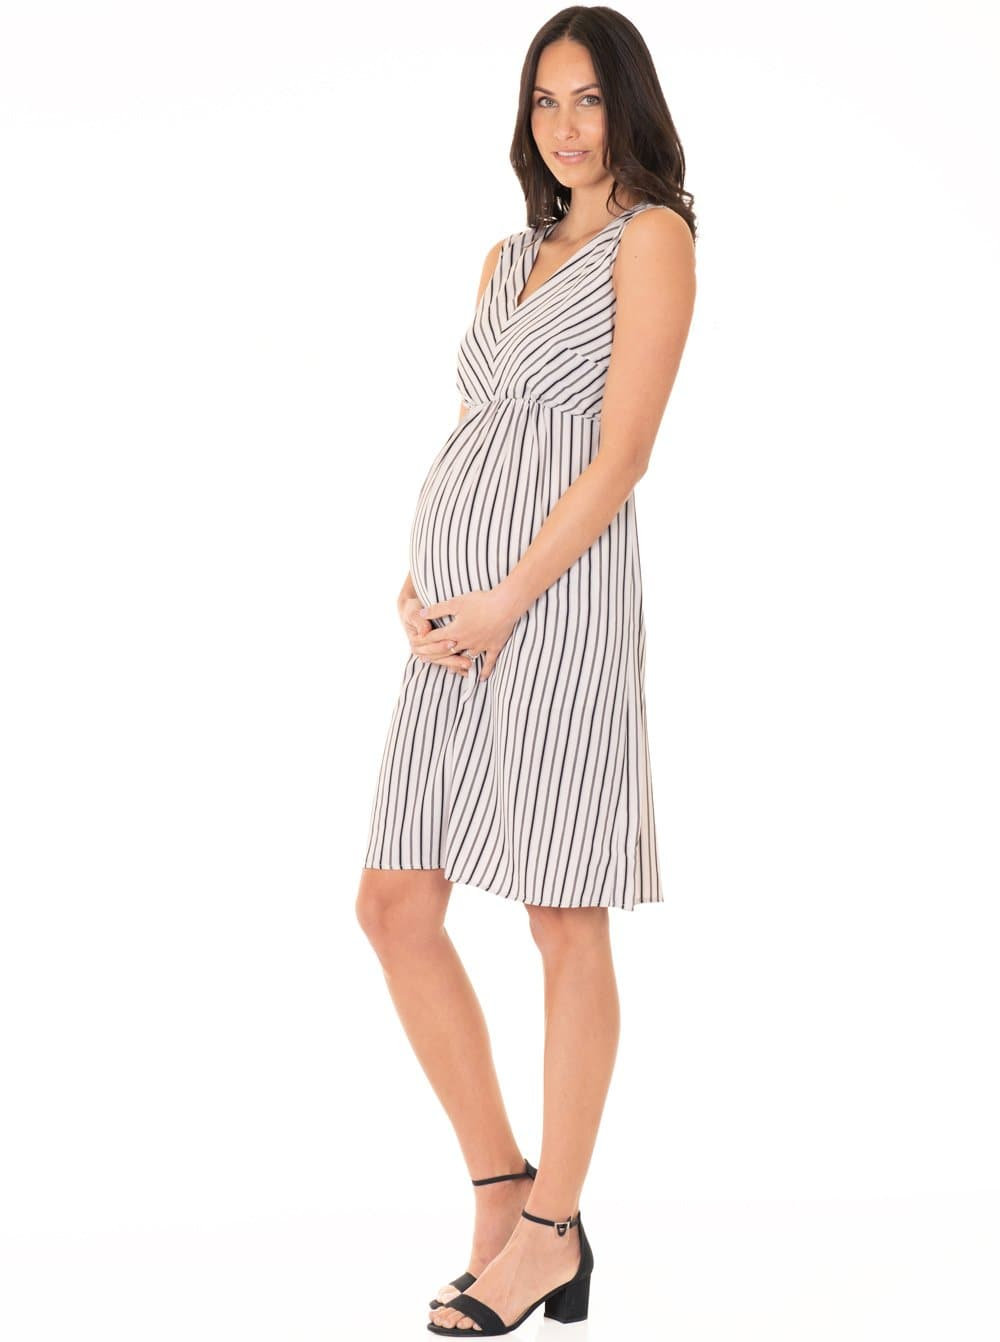 Maternity V-Neck Chiffon Dress in Black & White Stripes